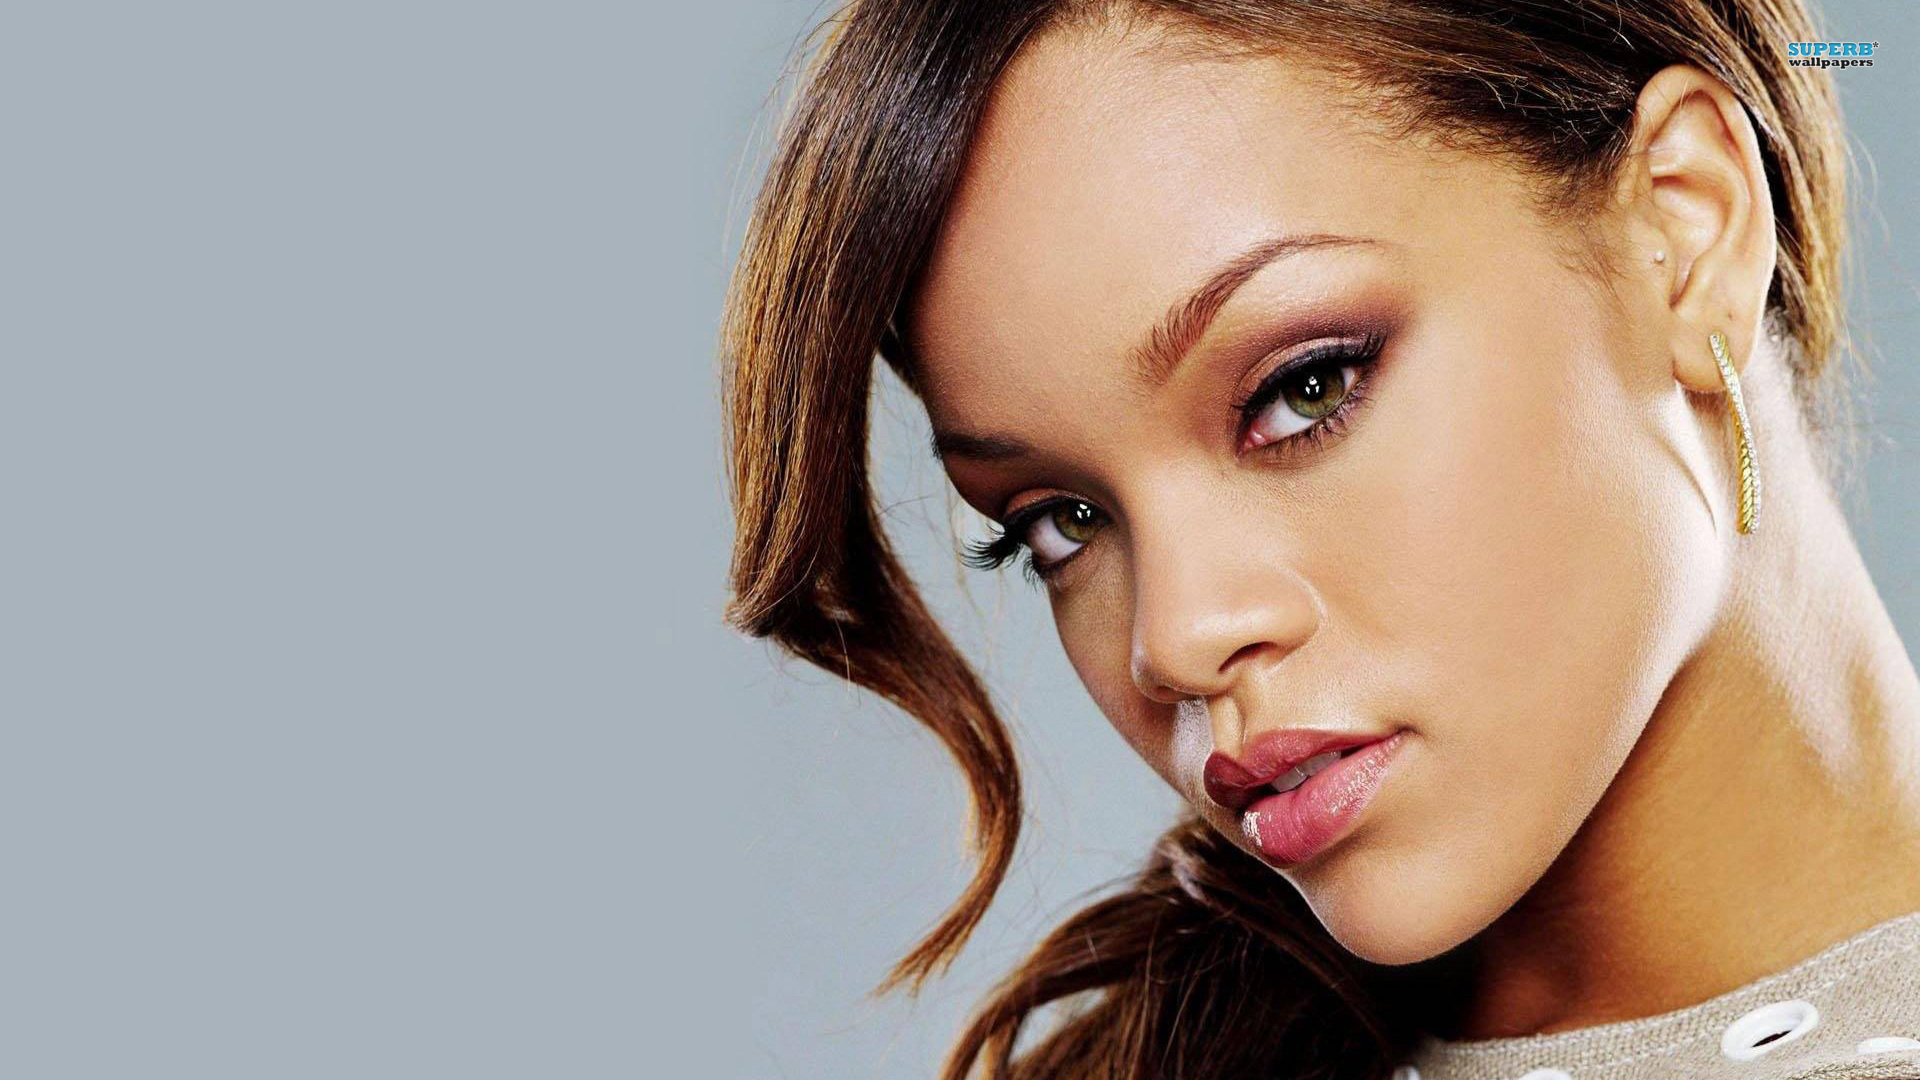 Wallpapers Rihanna Celebrity 1920x1080  #rihanna